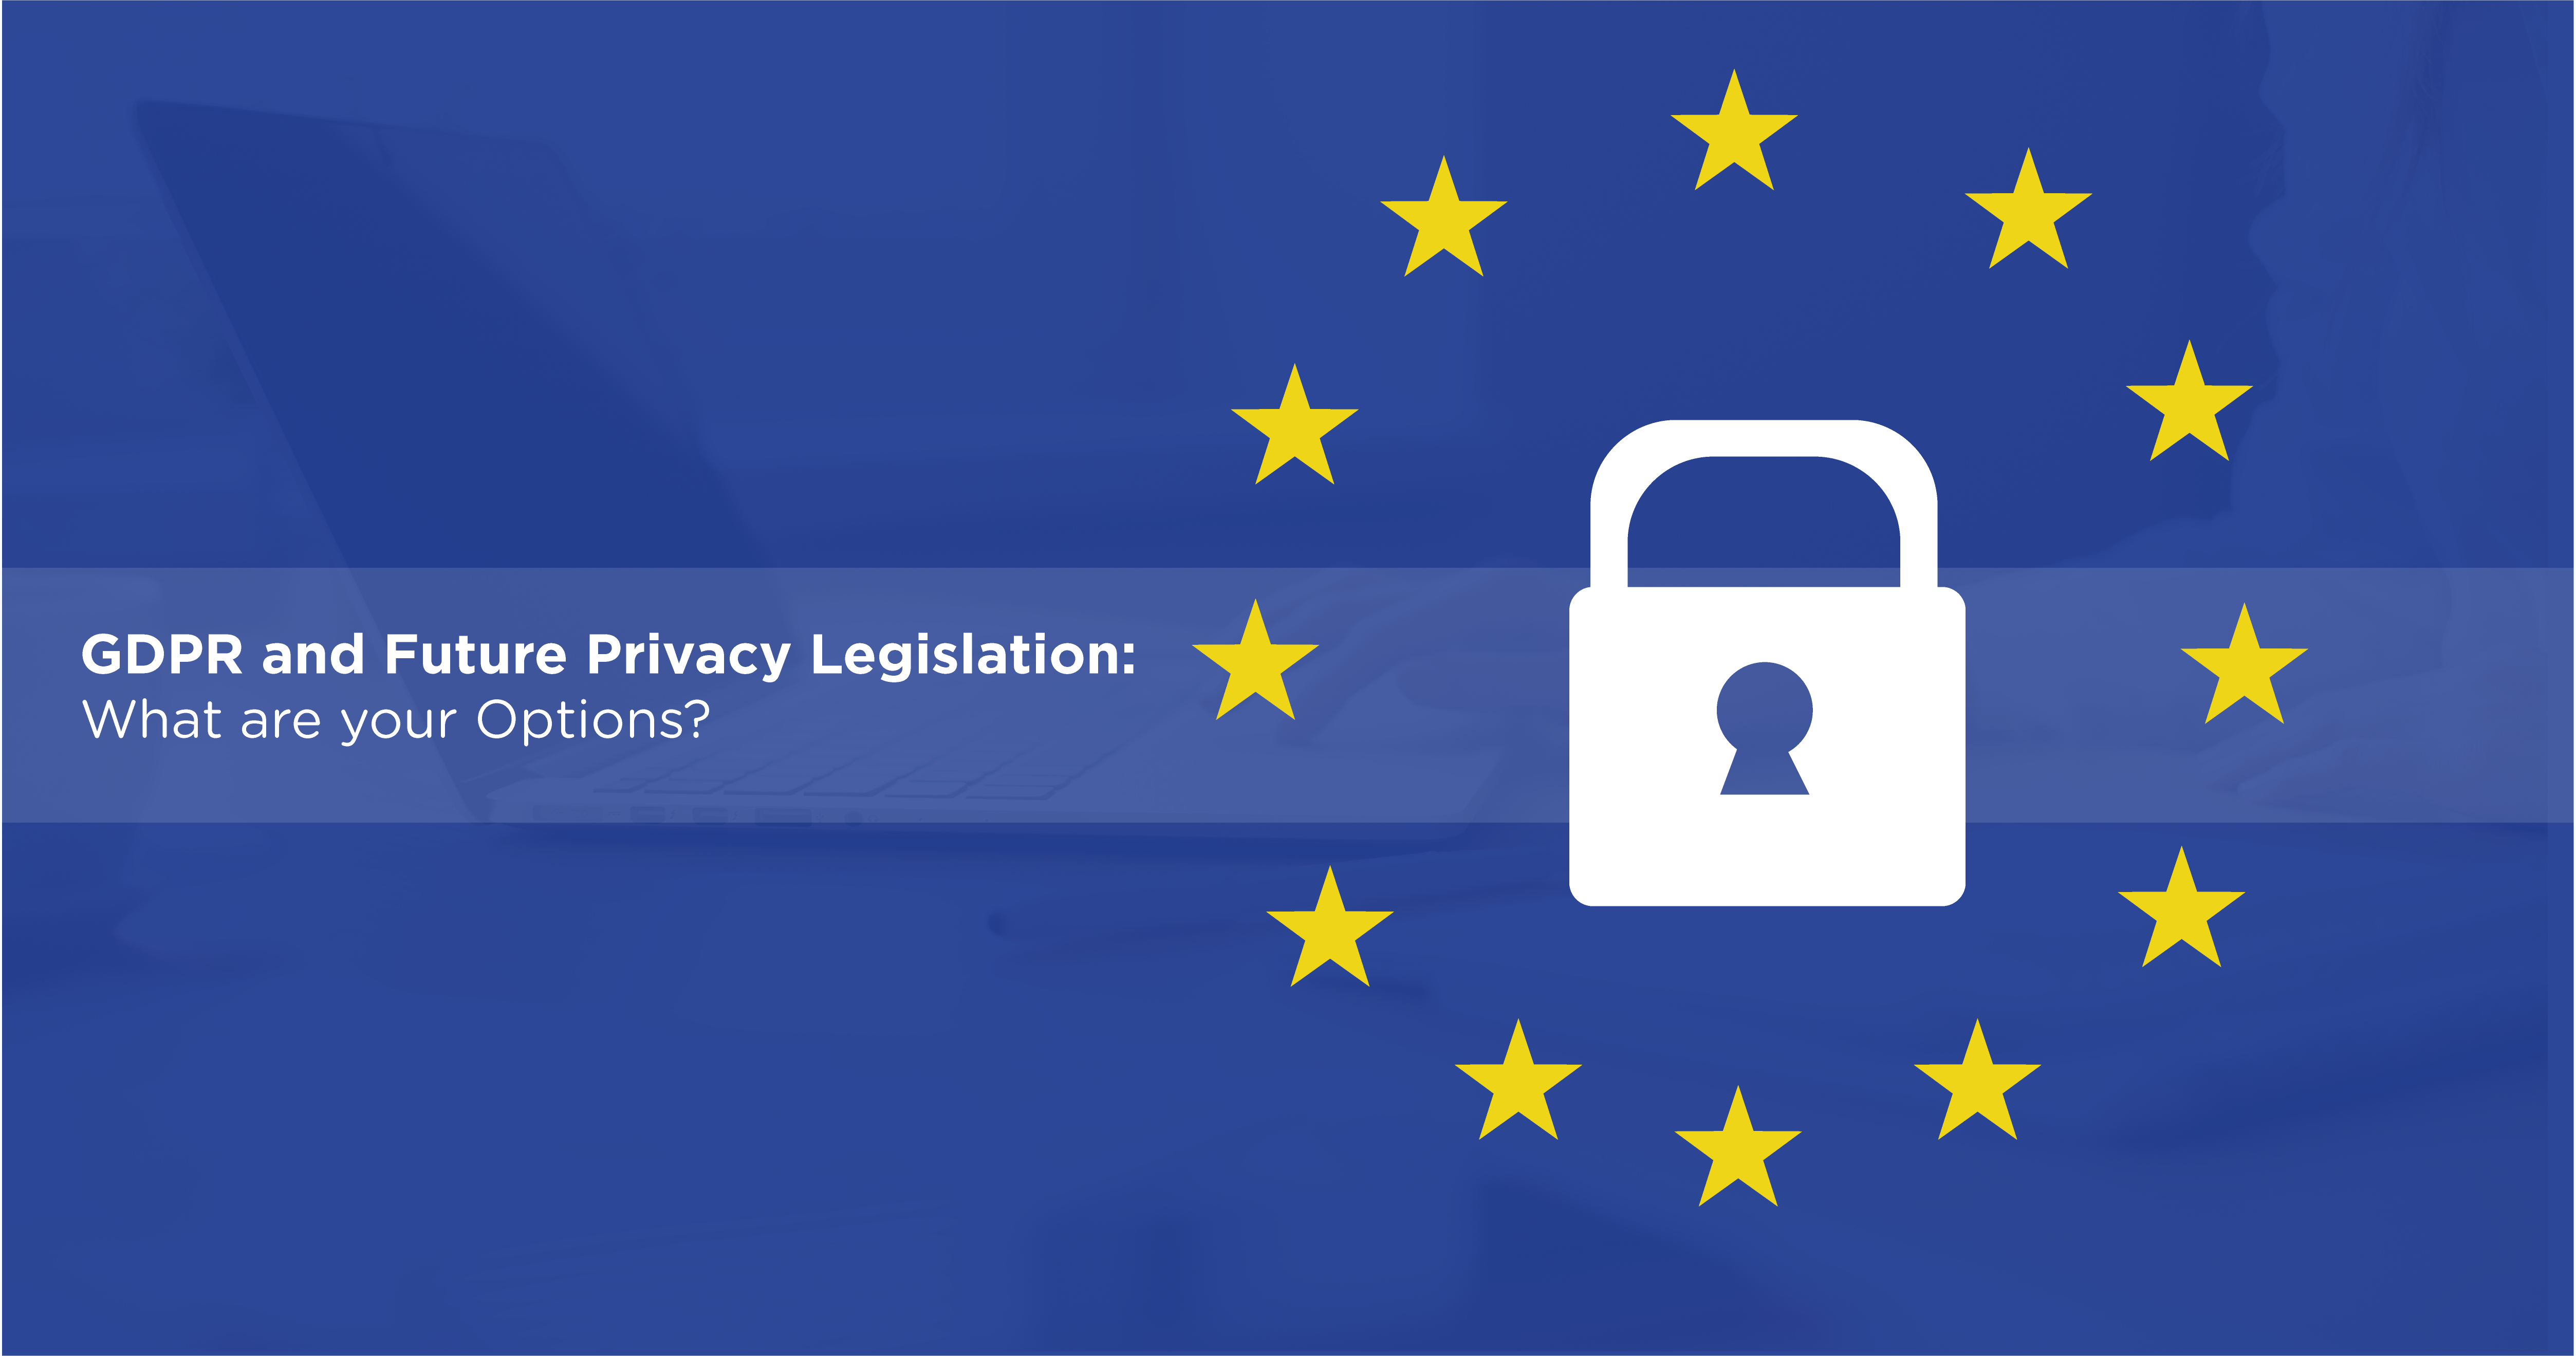 GDPR and Future Privacy Legislation: What are your Options?